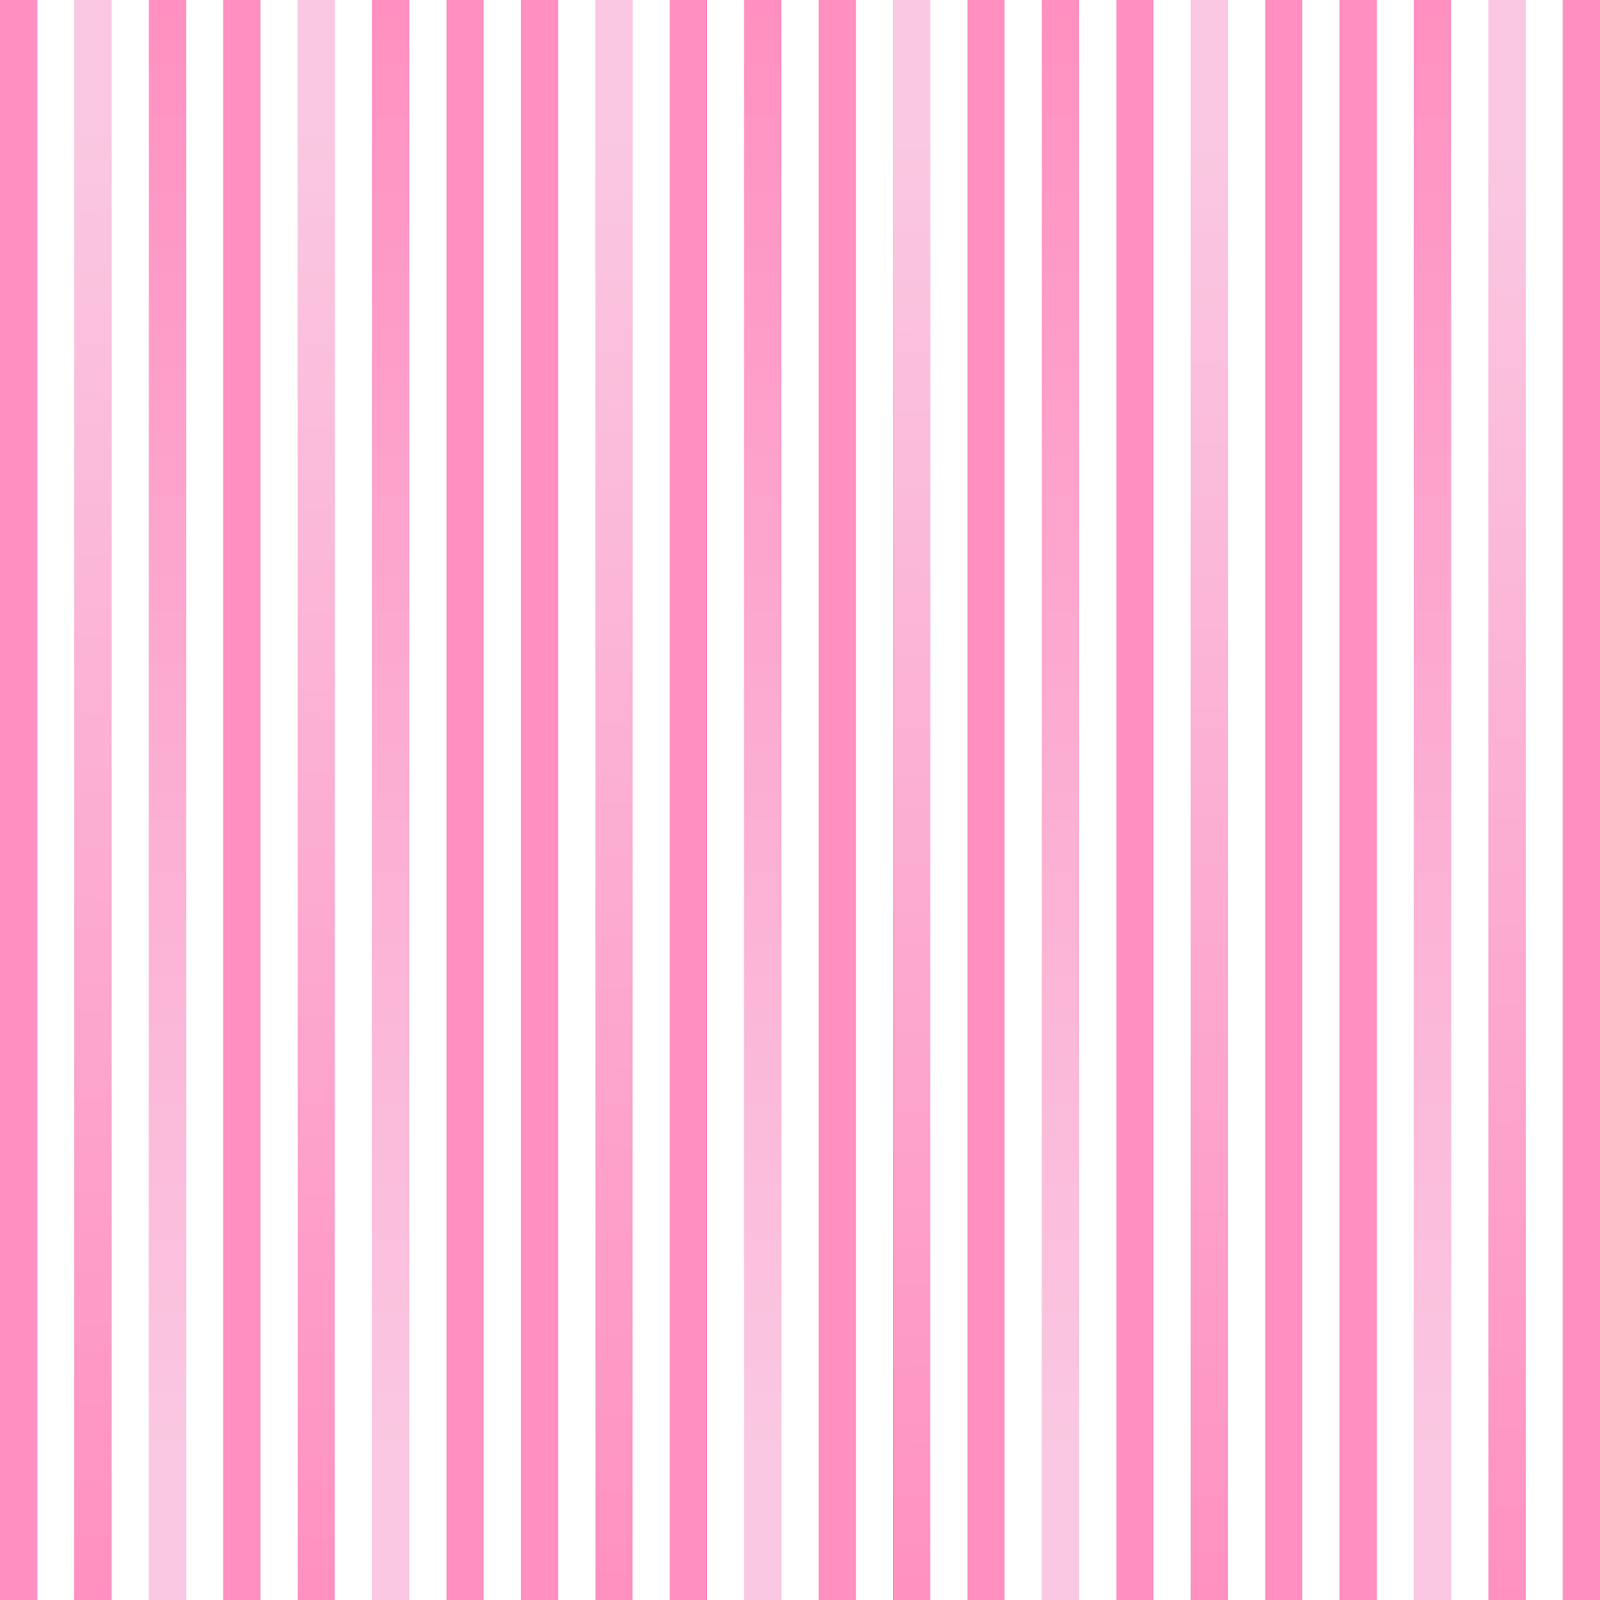 Gifts that say wow fun crafts and gift ideas free pink gifts that say wow fun crafts and gift ideas free pink backgrounds voltagebd Gallery